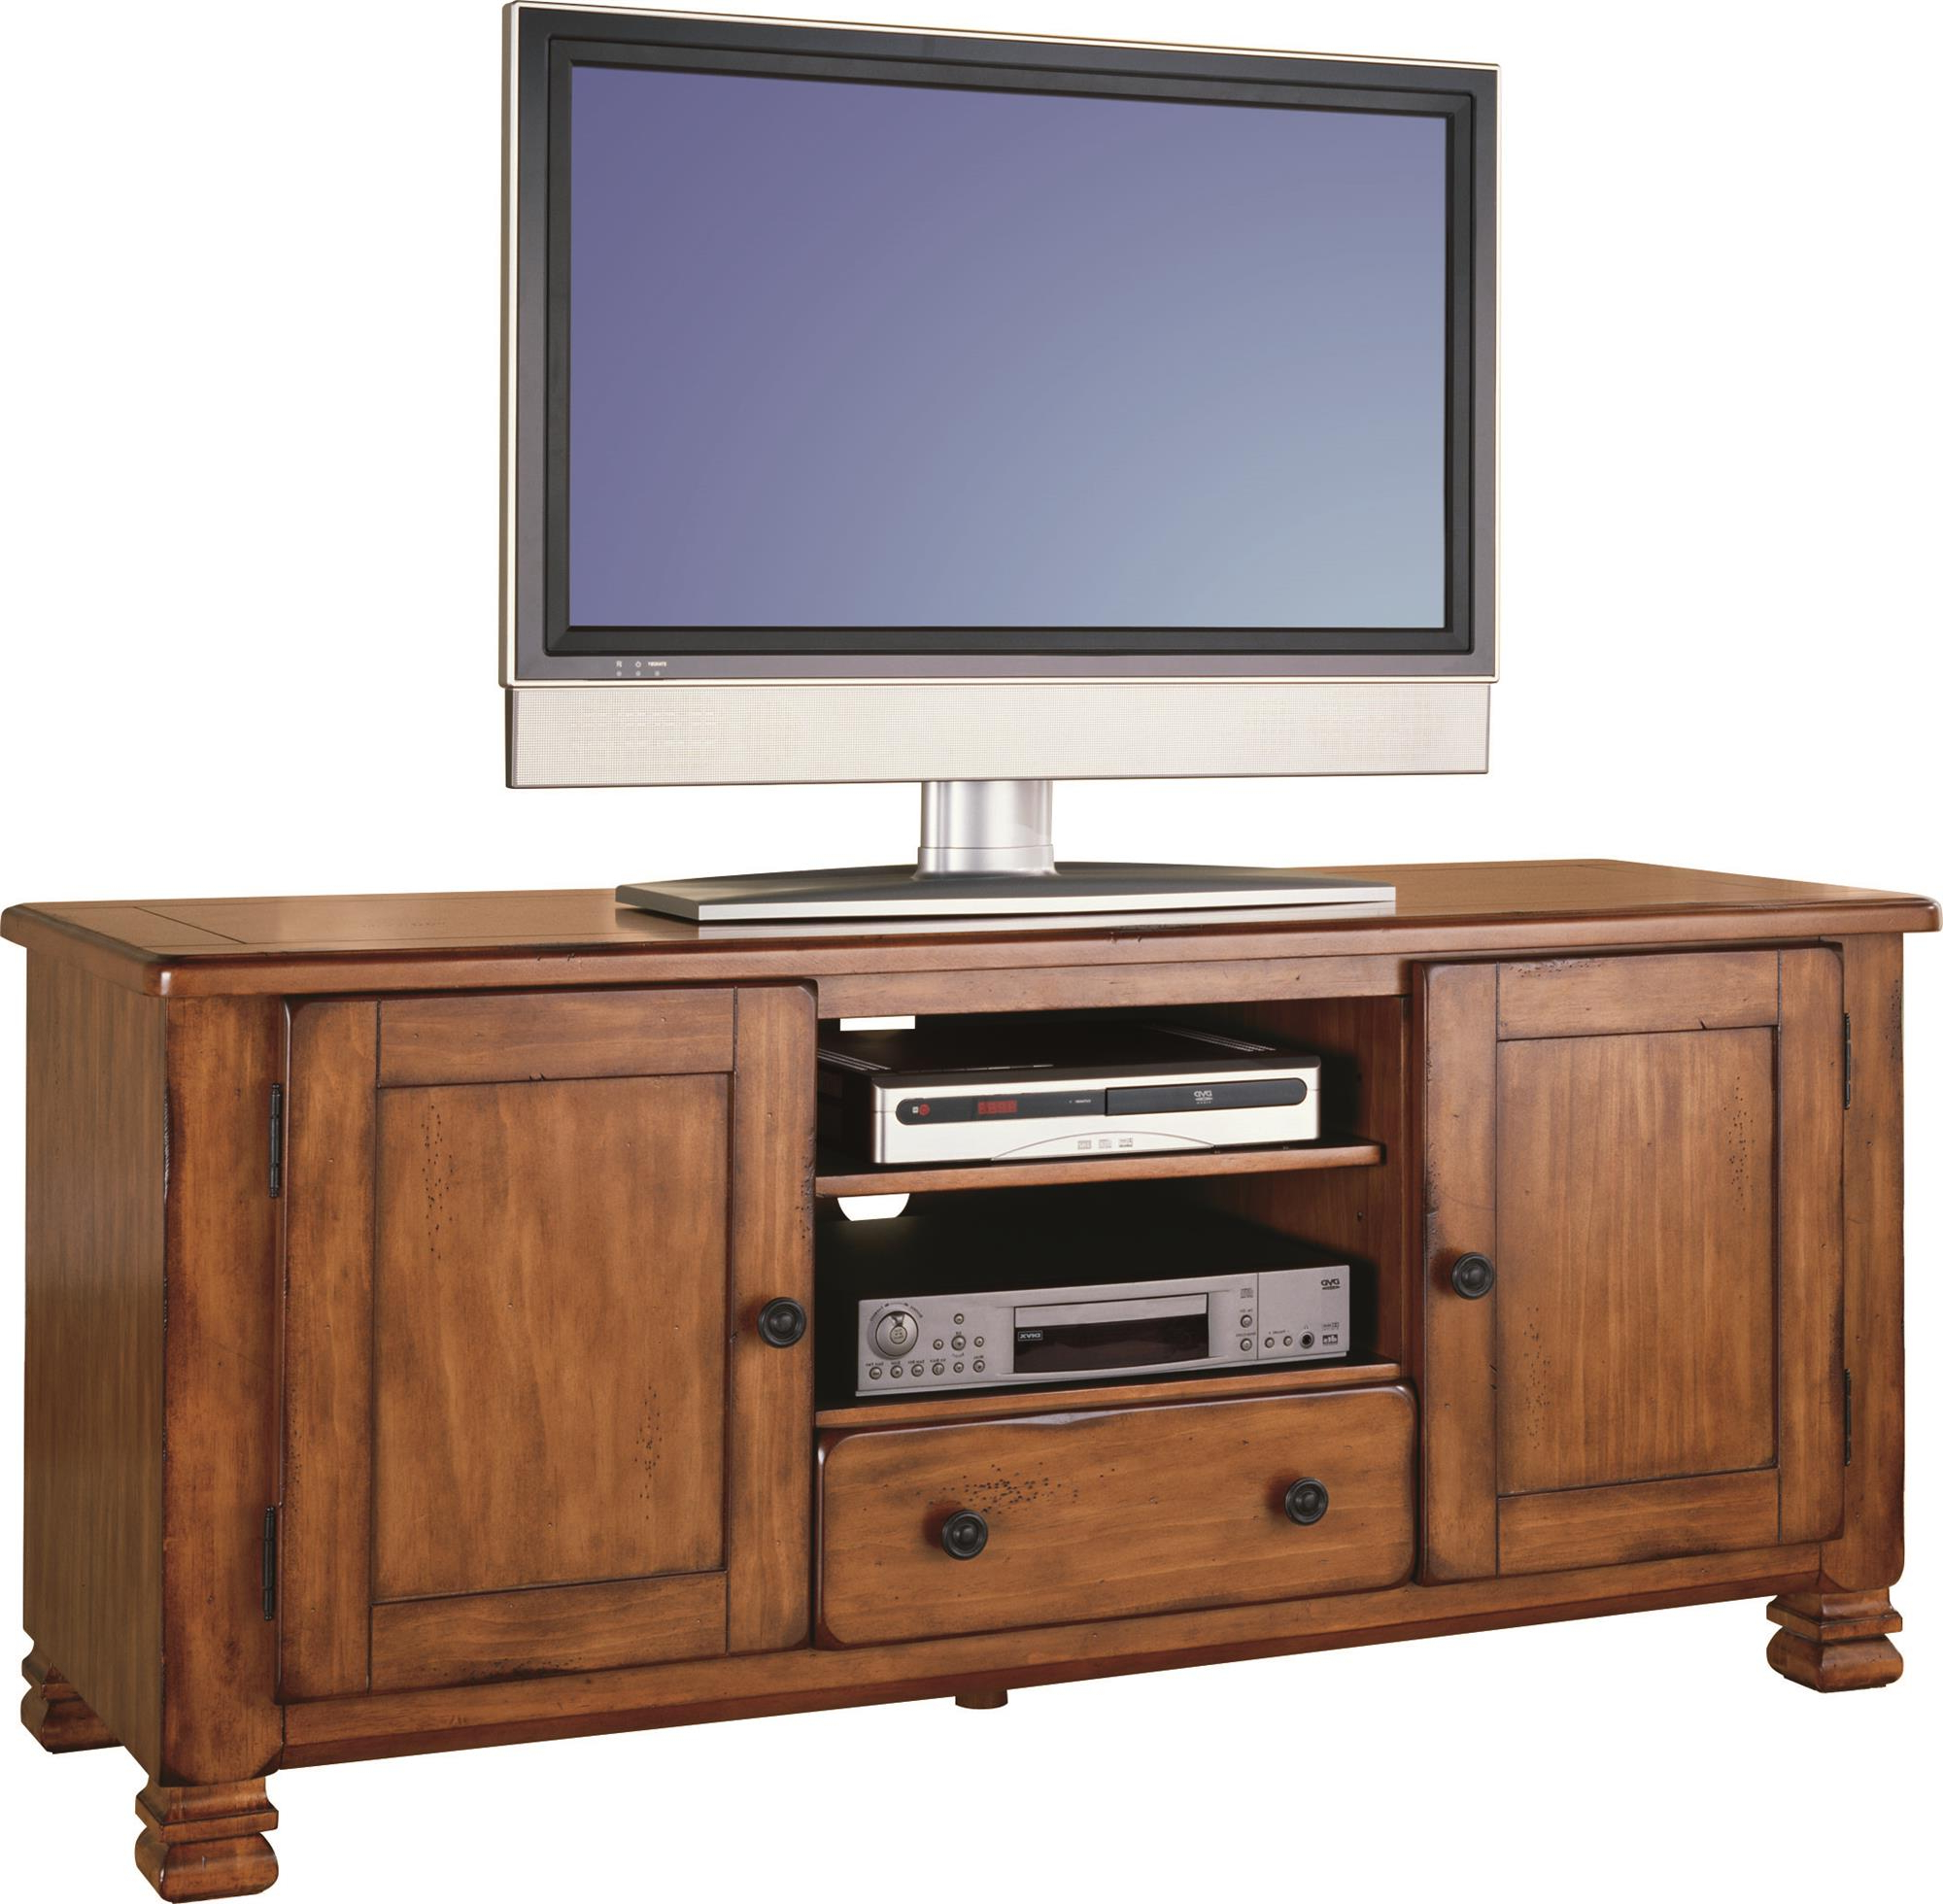 Current Ameriwood Home Summit Mountain Wood Veneer Tv Stand For For Indi Wide Tv Stands (View 2 of 25)